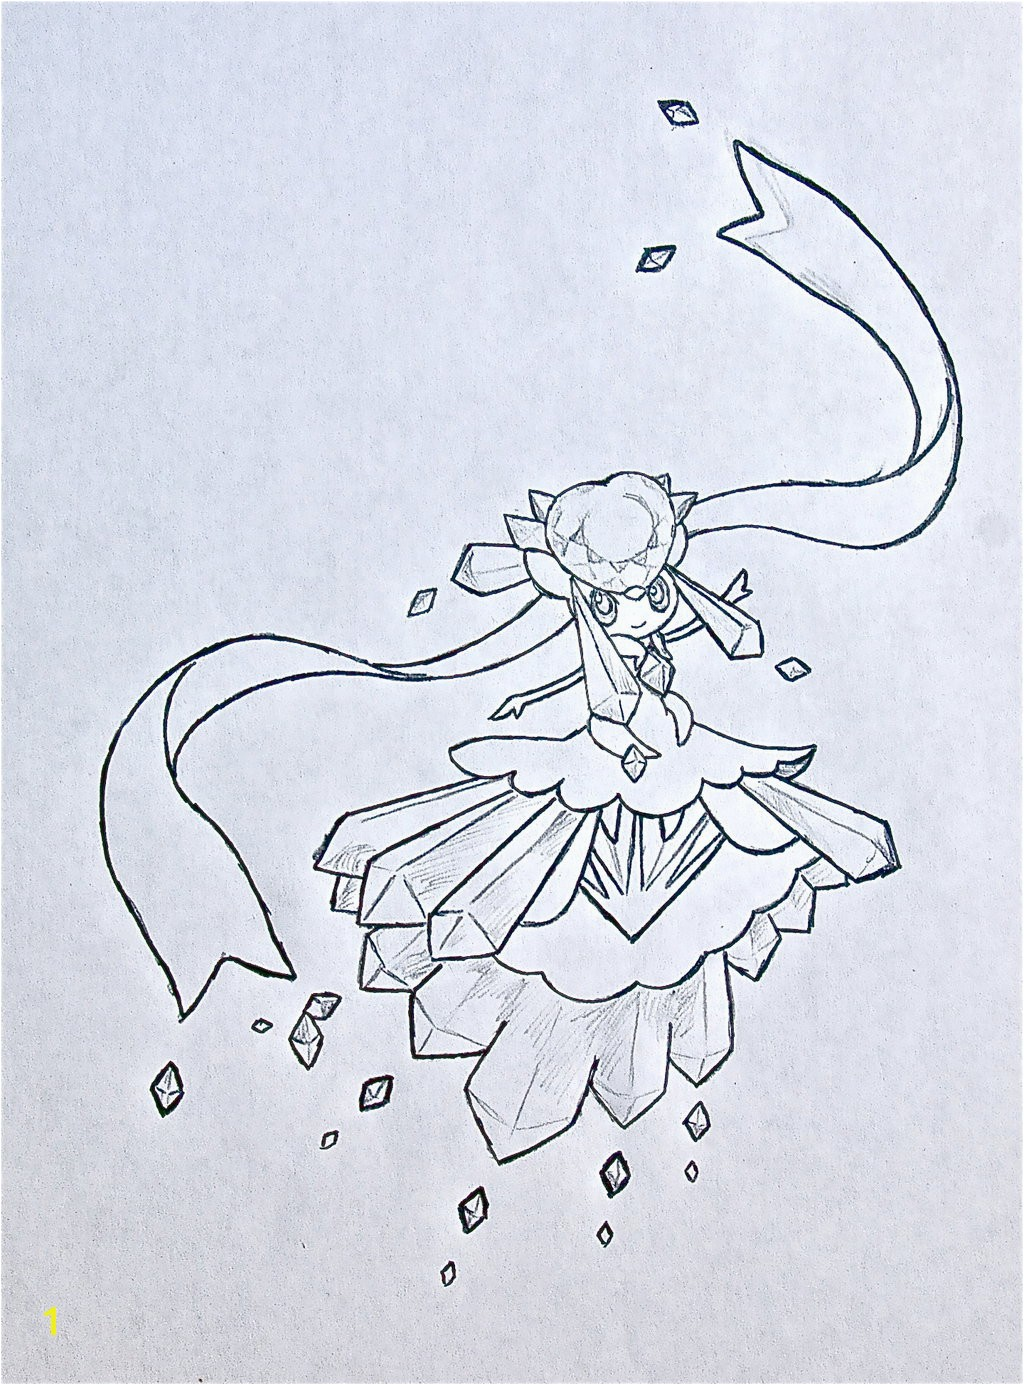 Mega Diancie Coloring Pages Unique Mega Diancie by Xxd17 Deviantart